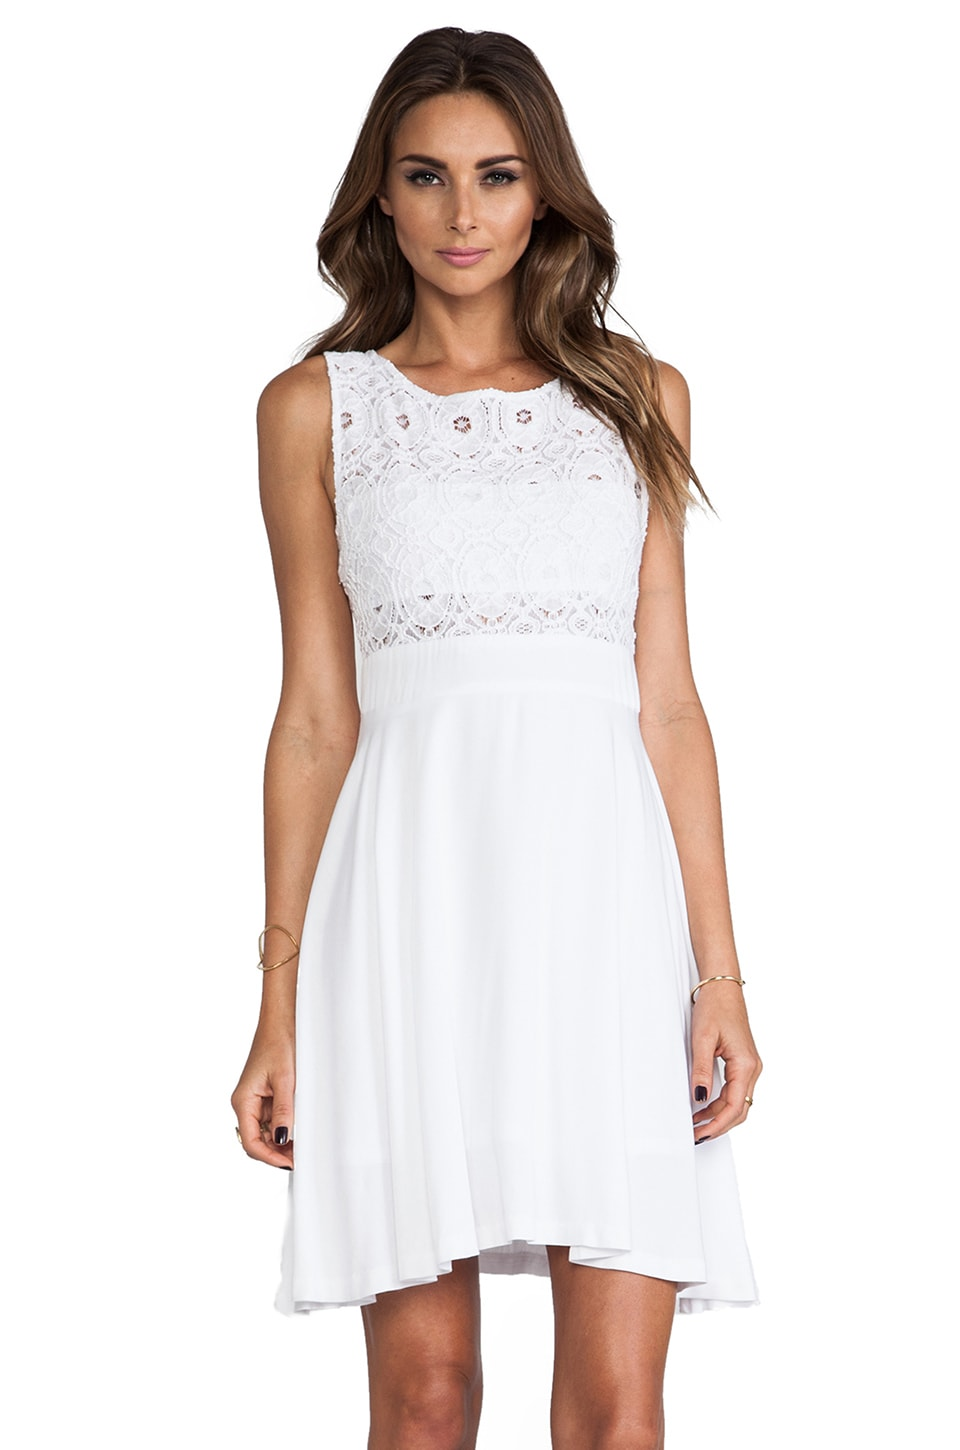 BB Dakota Sela Mini Dress w/ Lace Top in Optic White